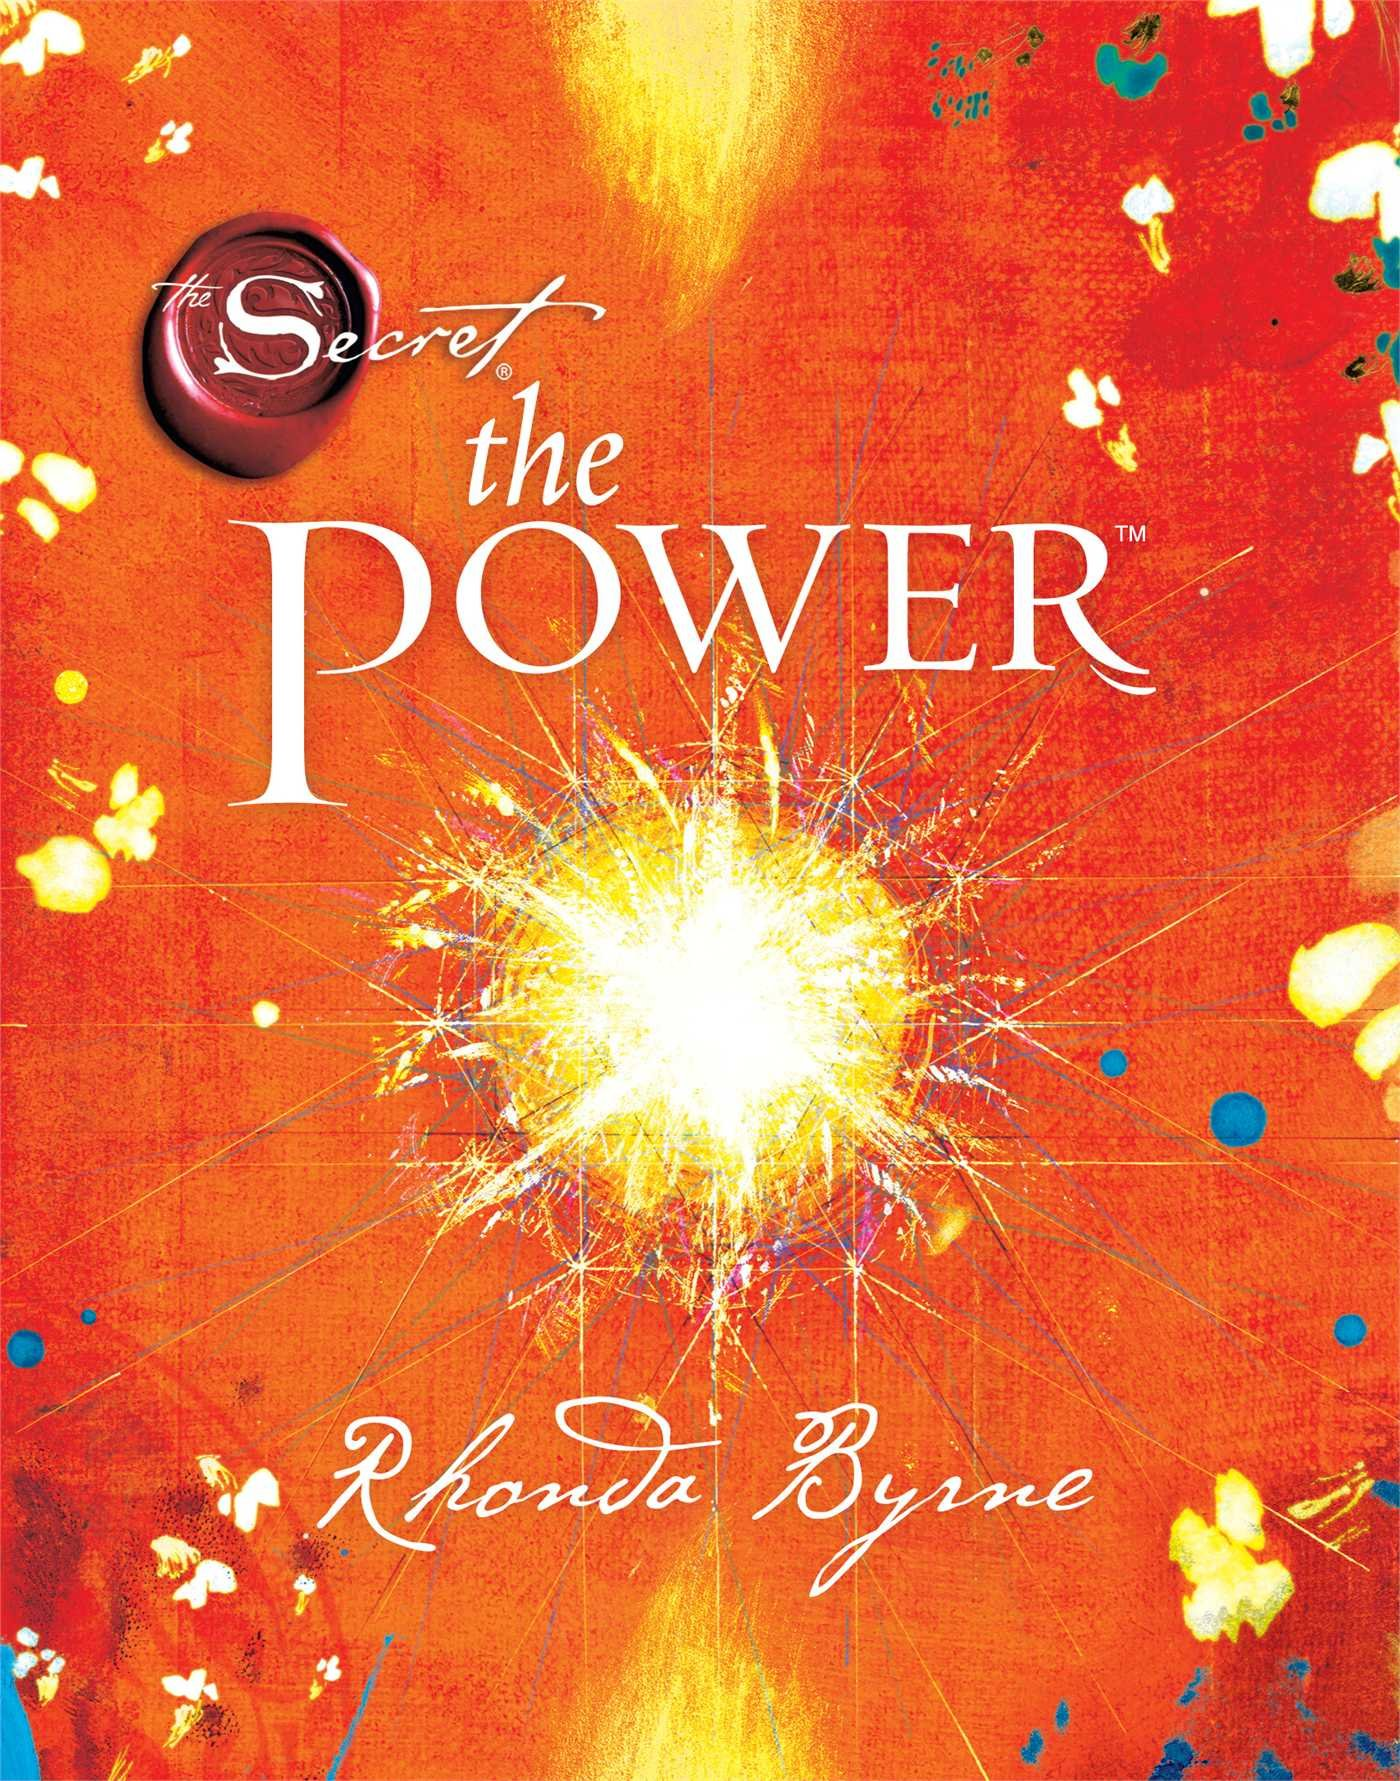 The Power (The Secret) by Rhonda Byrne